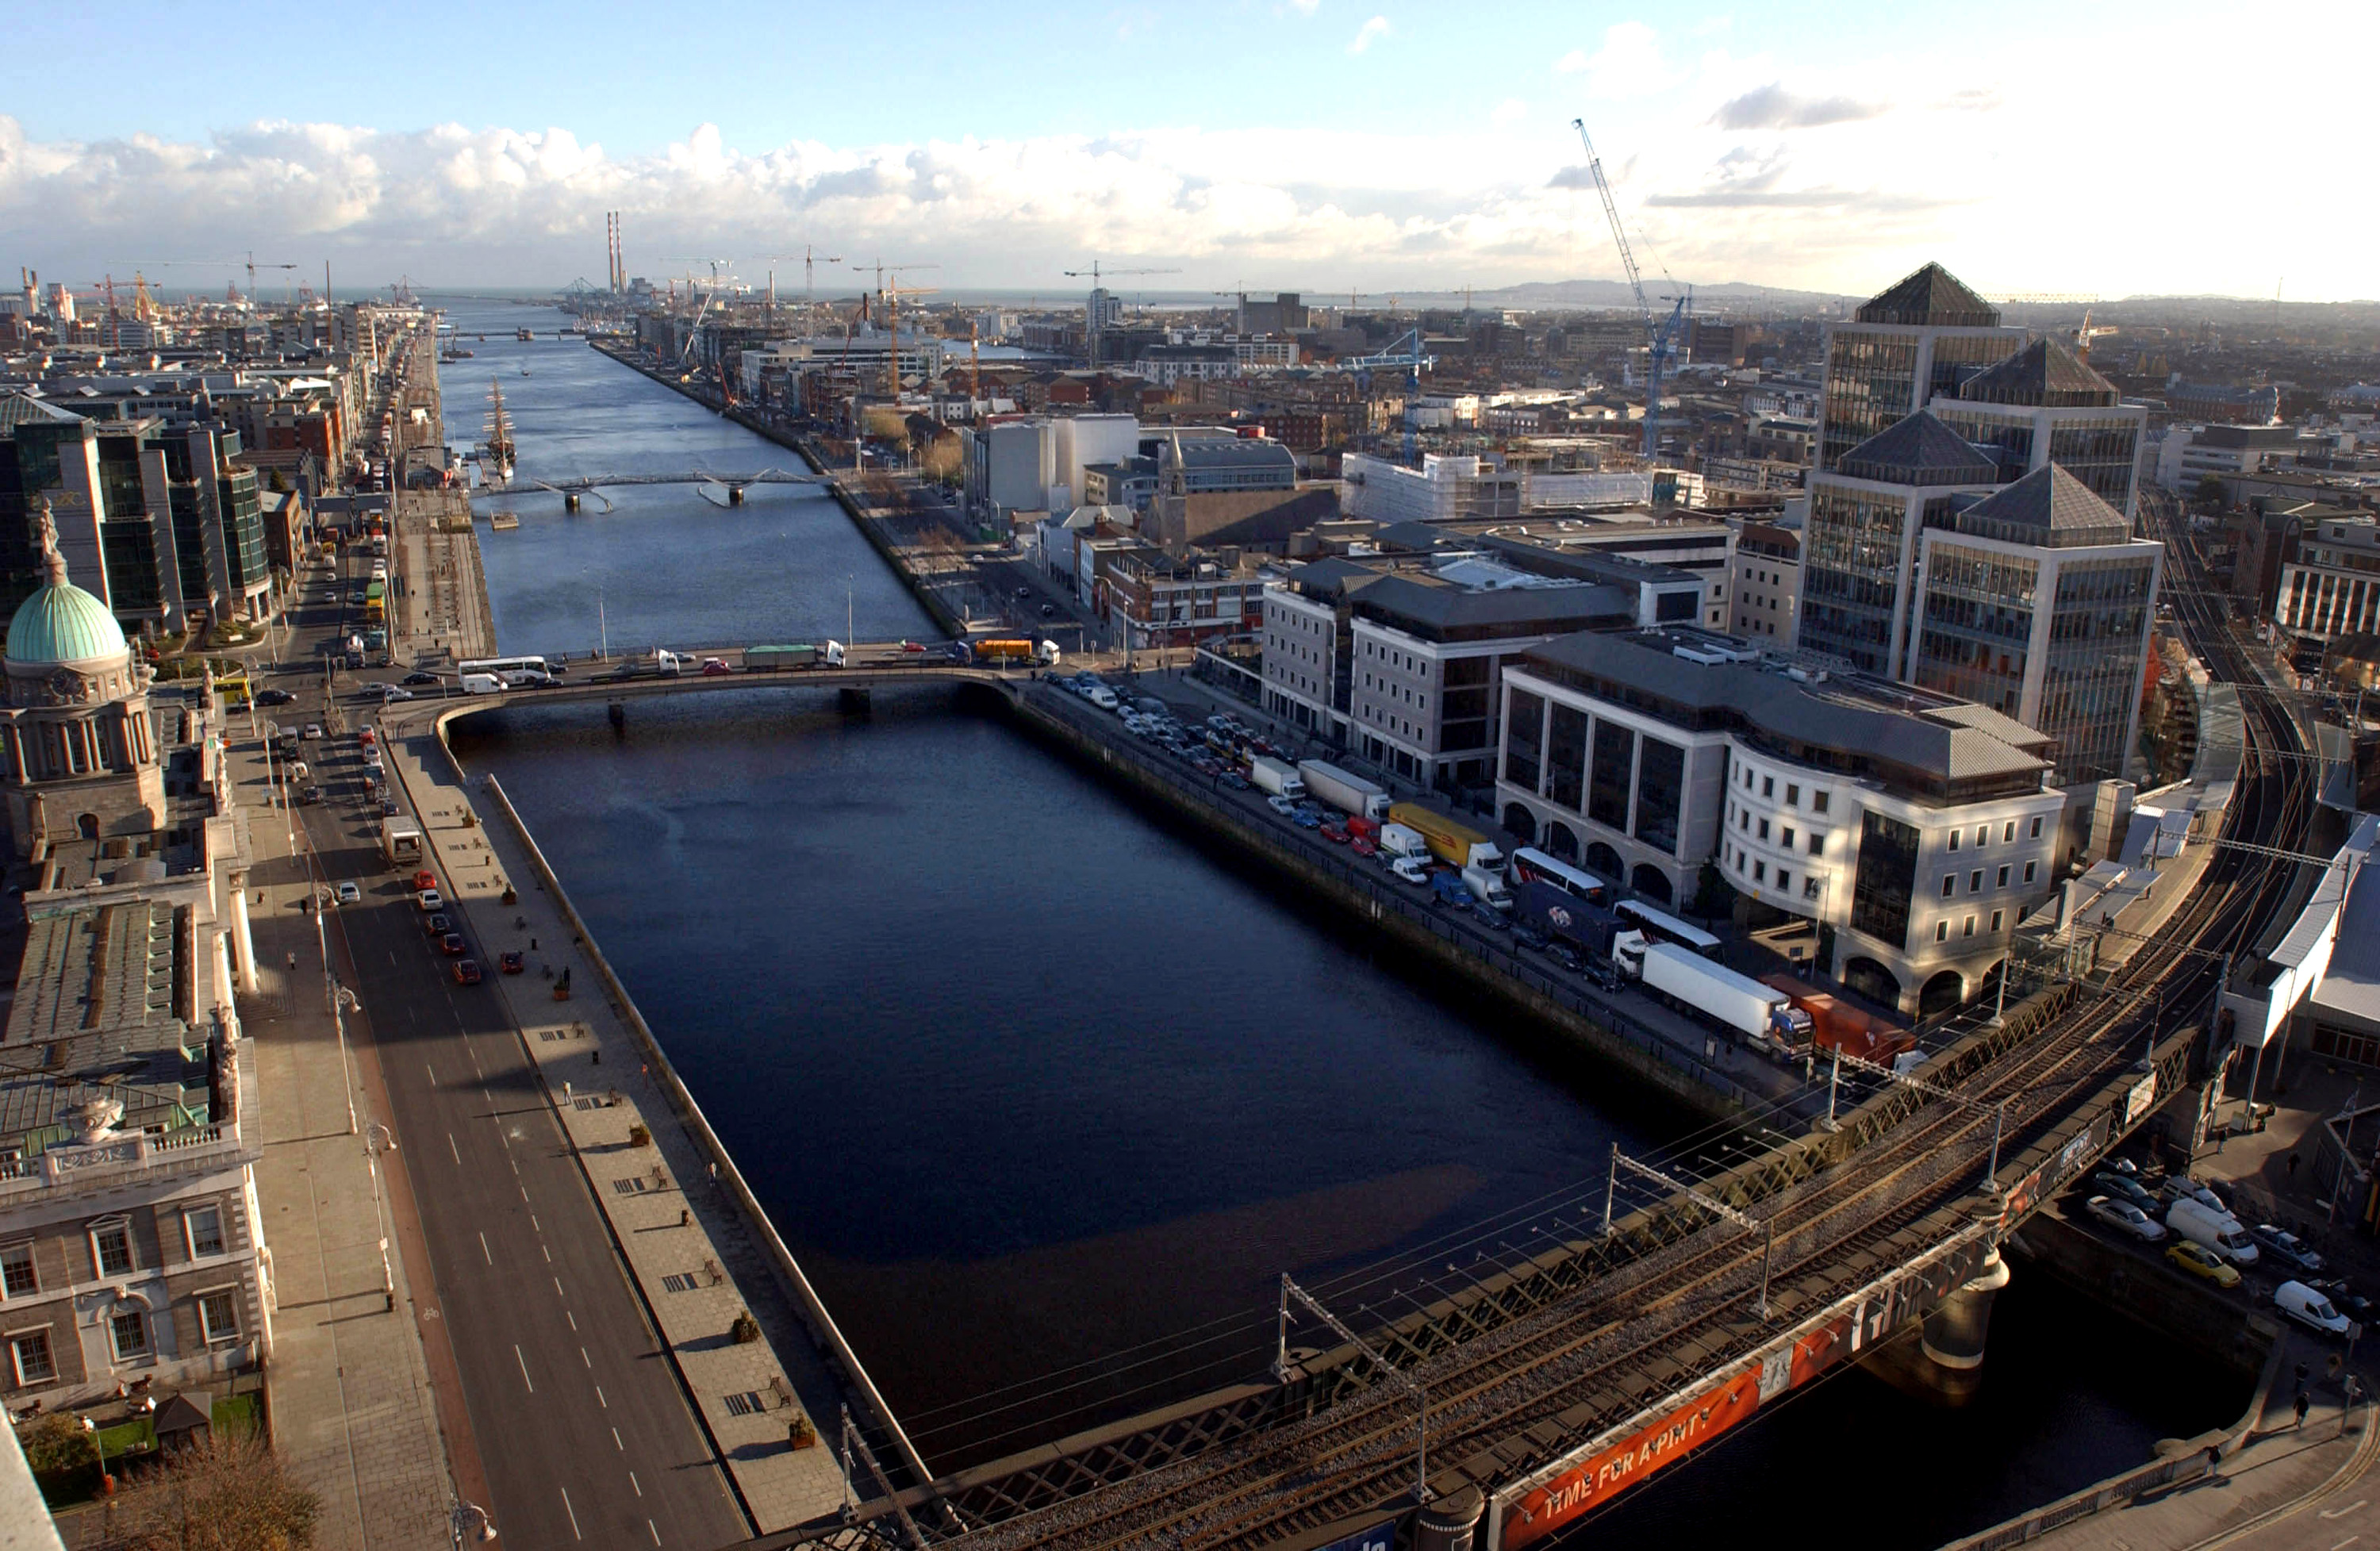 The city centre and the River Liffey is viewed across Dublin